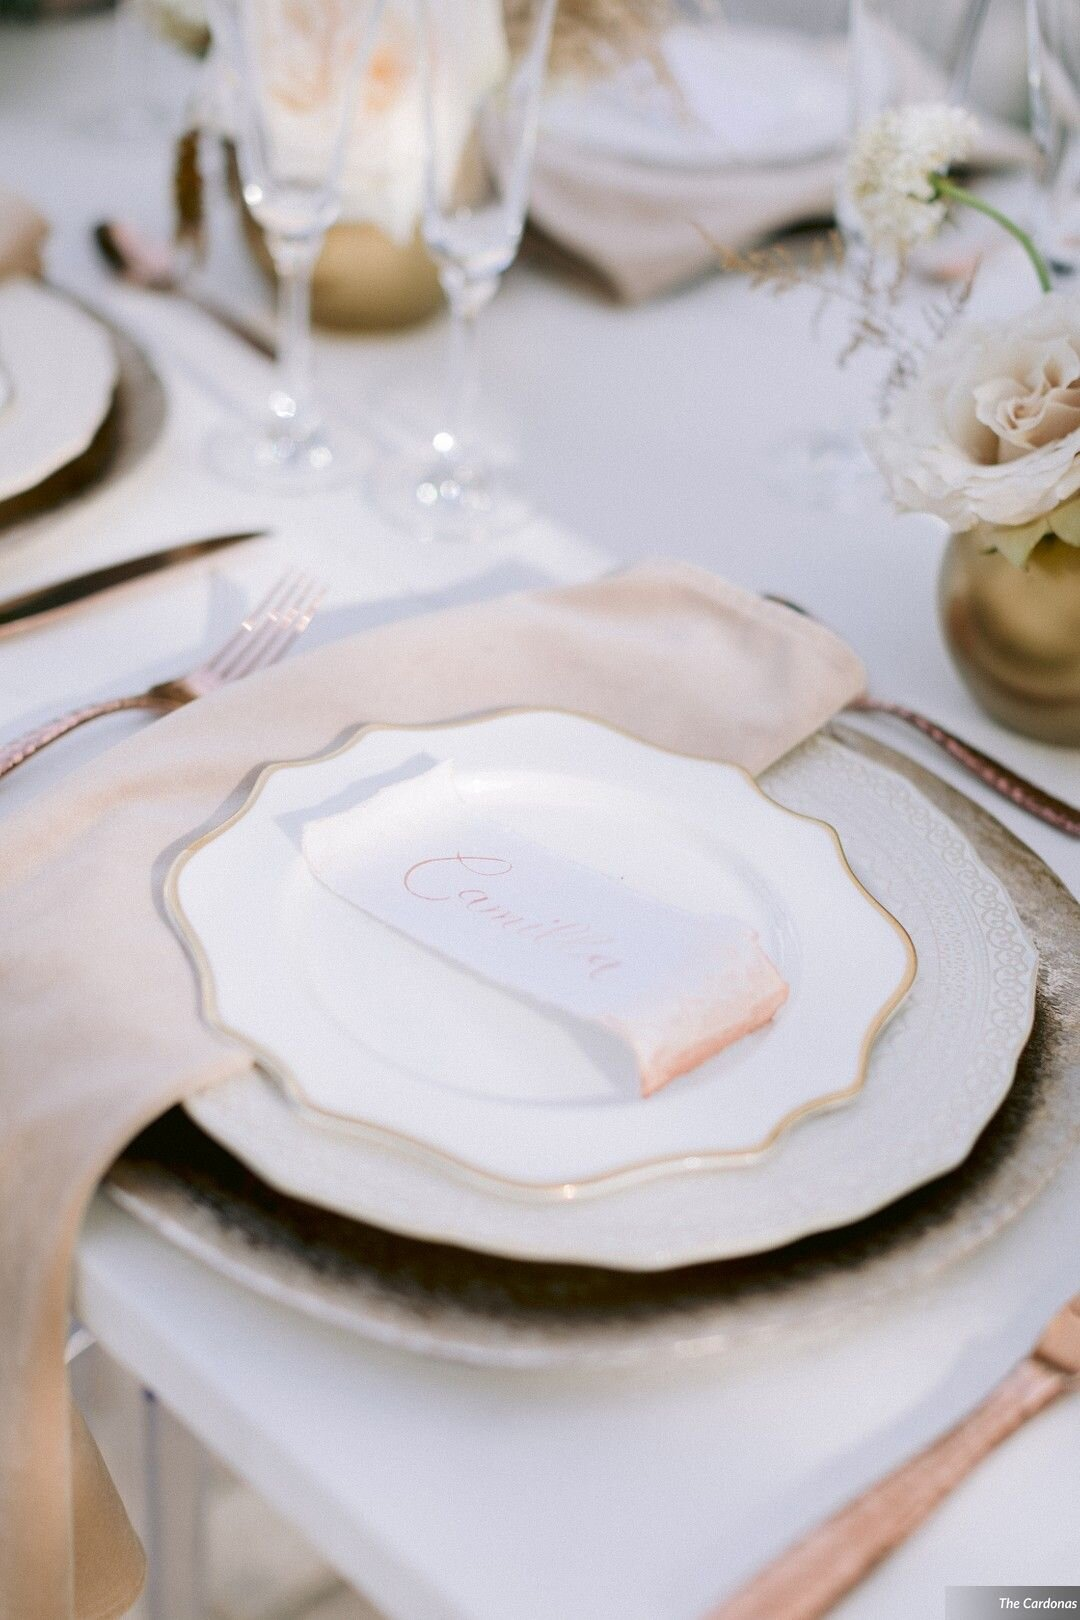 Reception with Rectangular Place Cards on Rose Gold Place Settings. Modern Calligraphy written names in Rose Gold Ink. Made with white handmade paper with a deckled edge or torn paper detail. Watercolor wash on one edge.